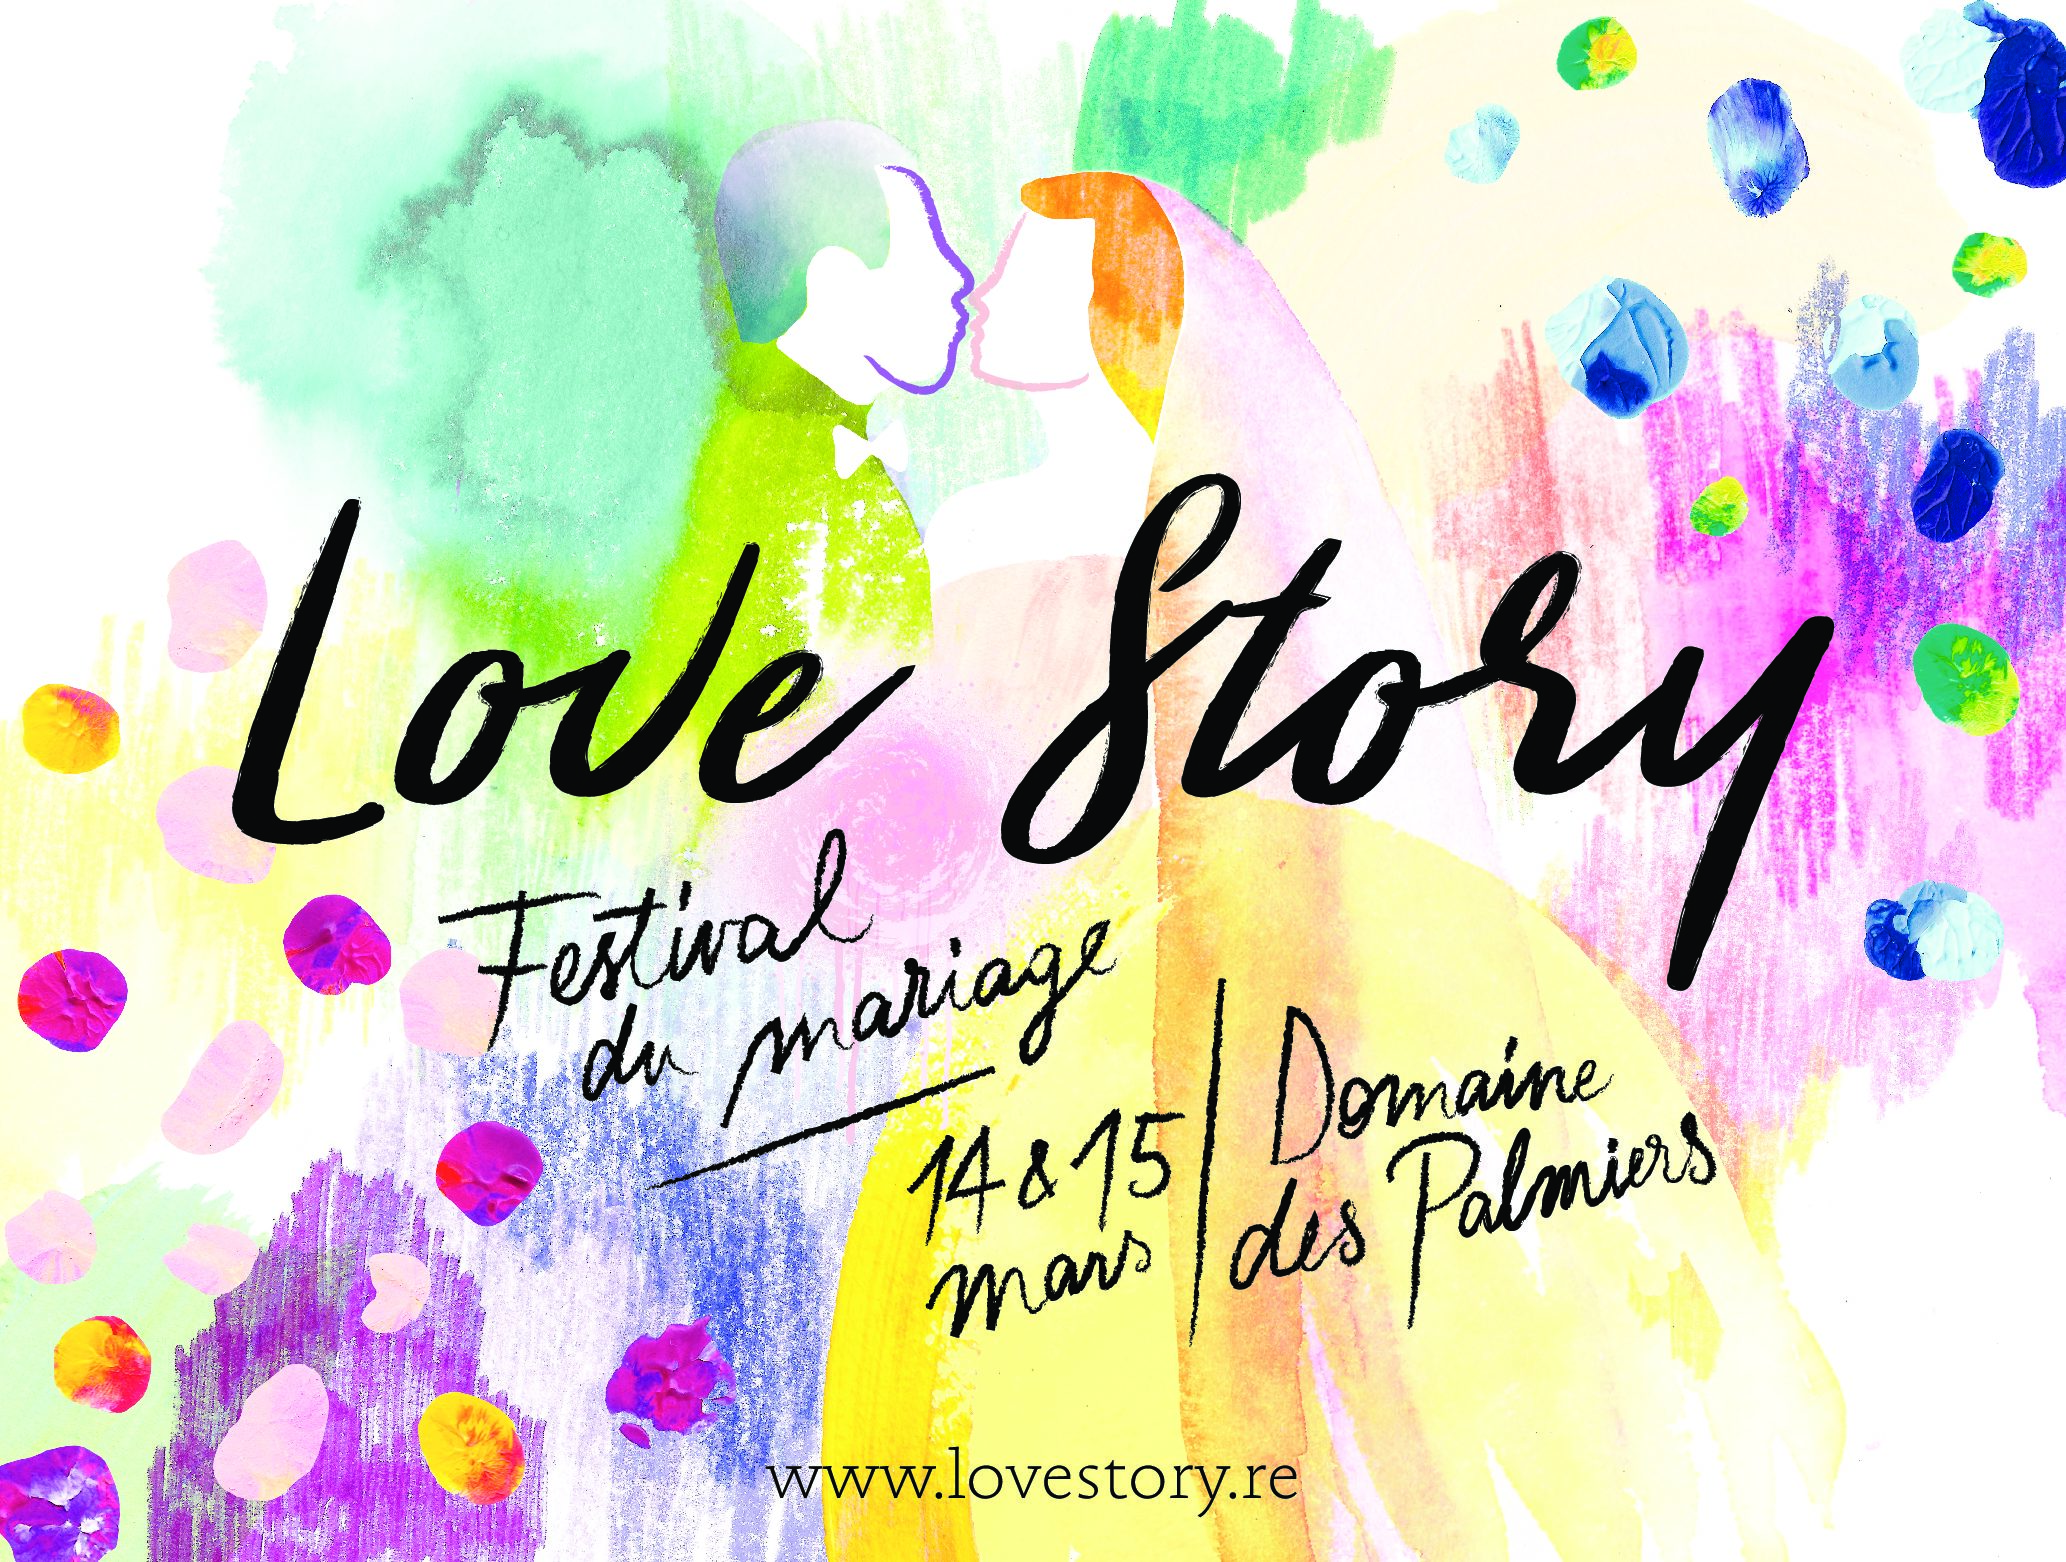 LOVE STORY FESTIVAL – ART EDITION by METVOUS